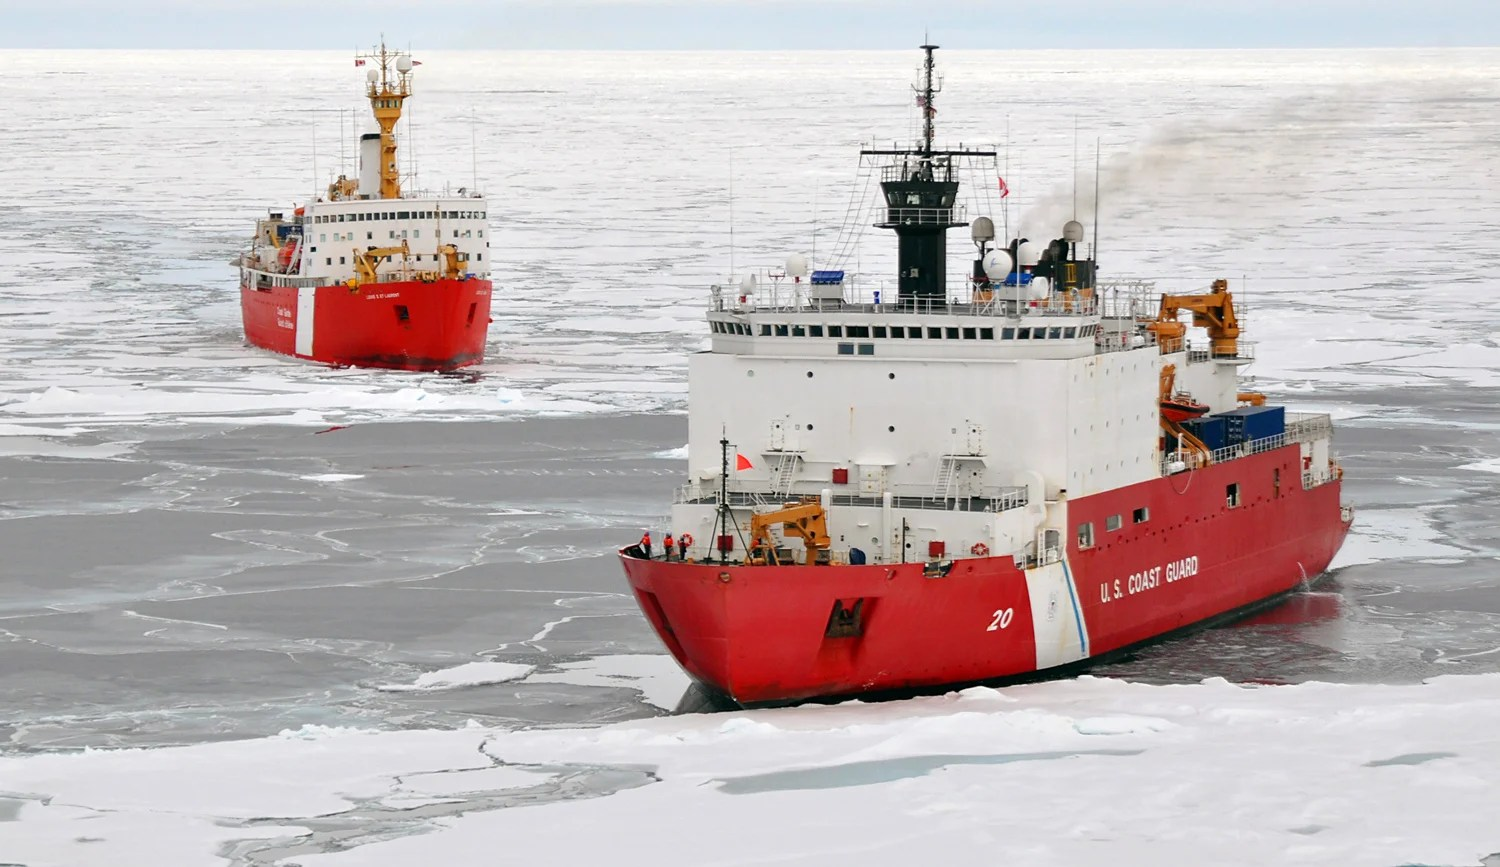 Increased maritime traffic raises the risks of oil spills in the Arctic.